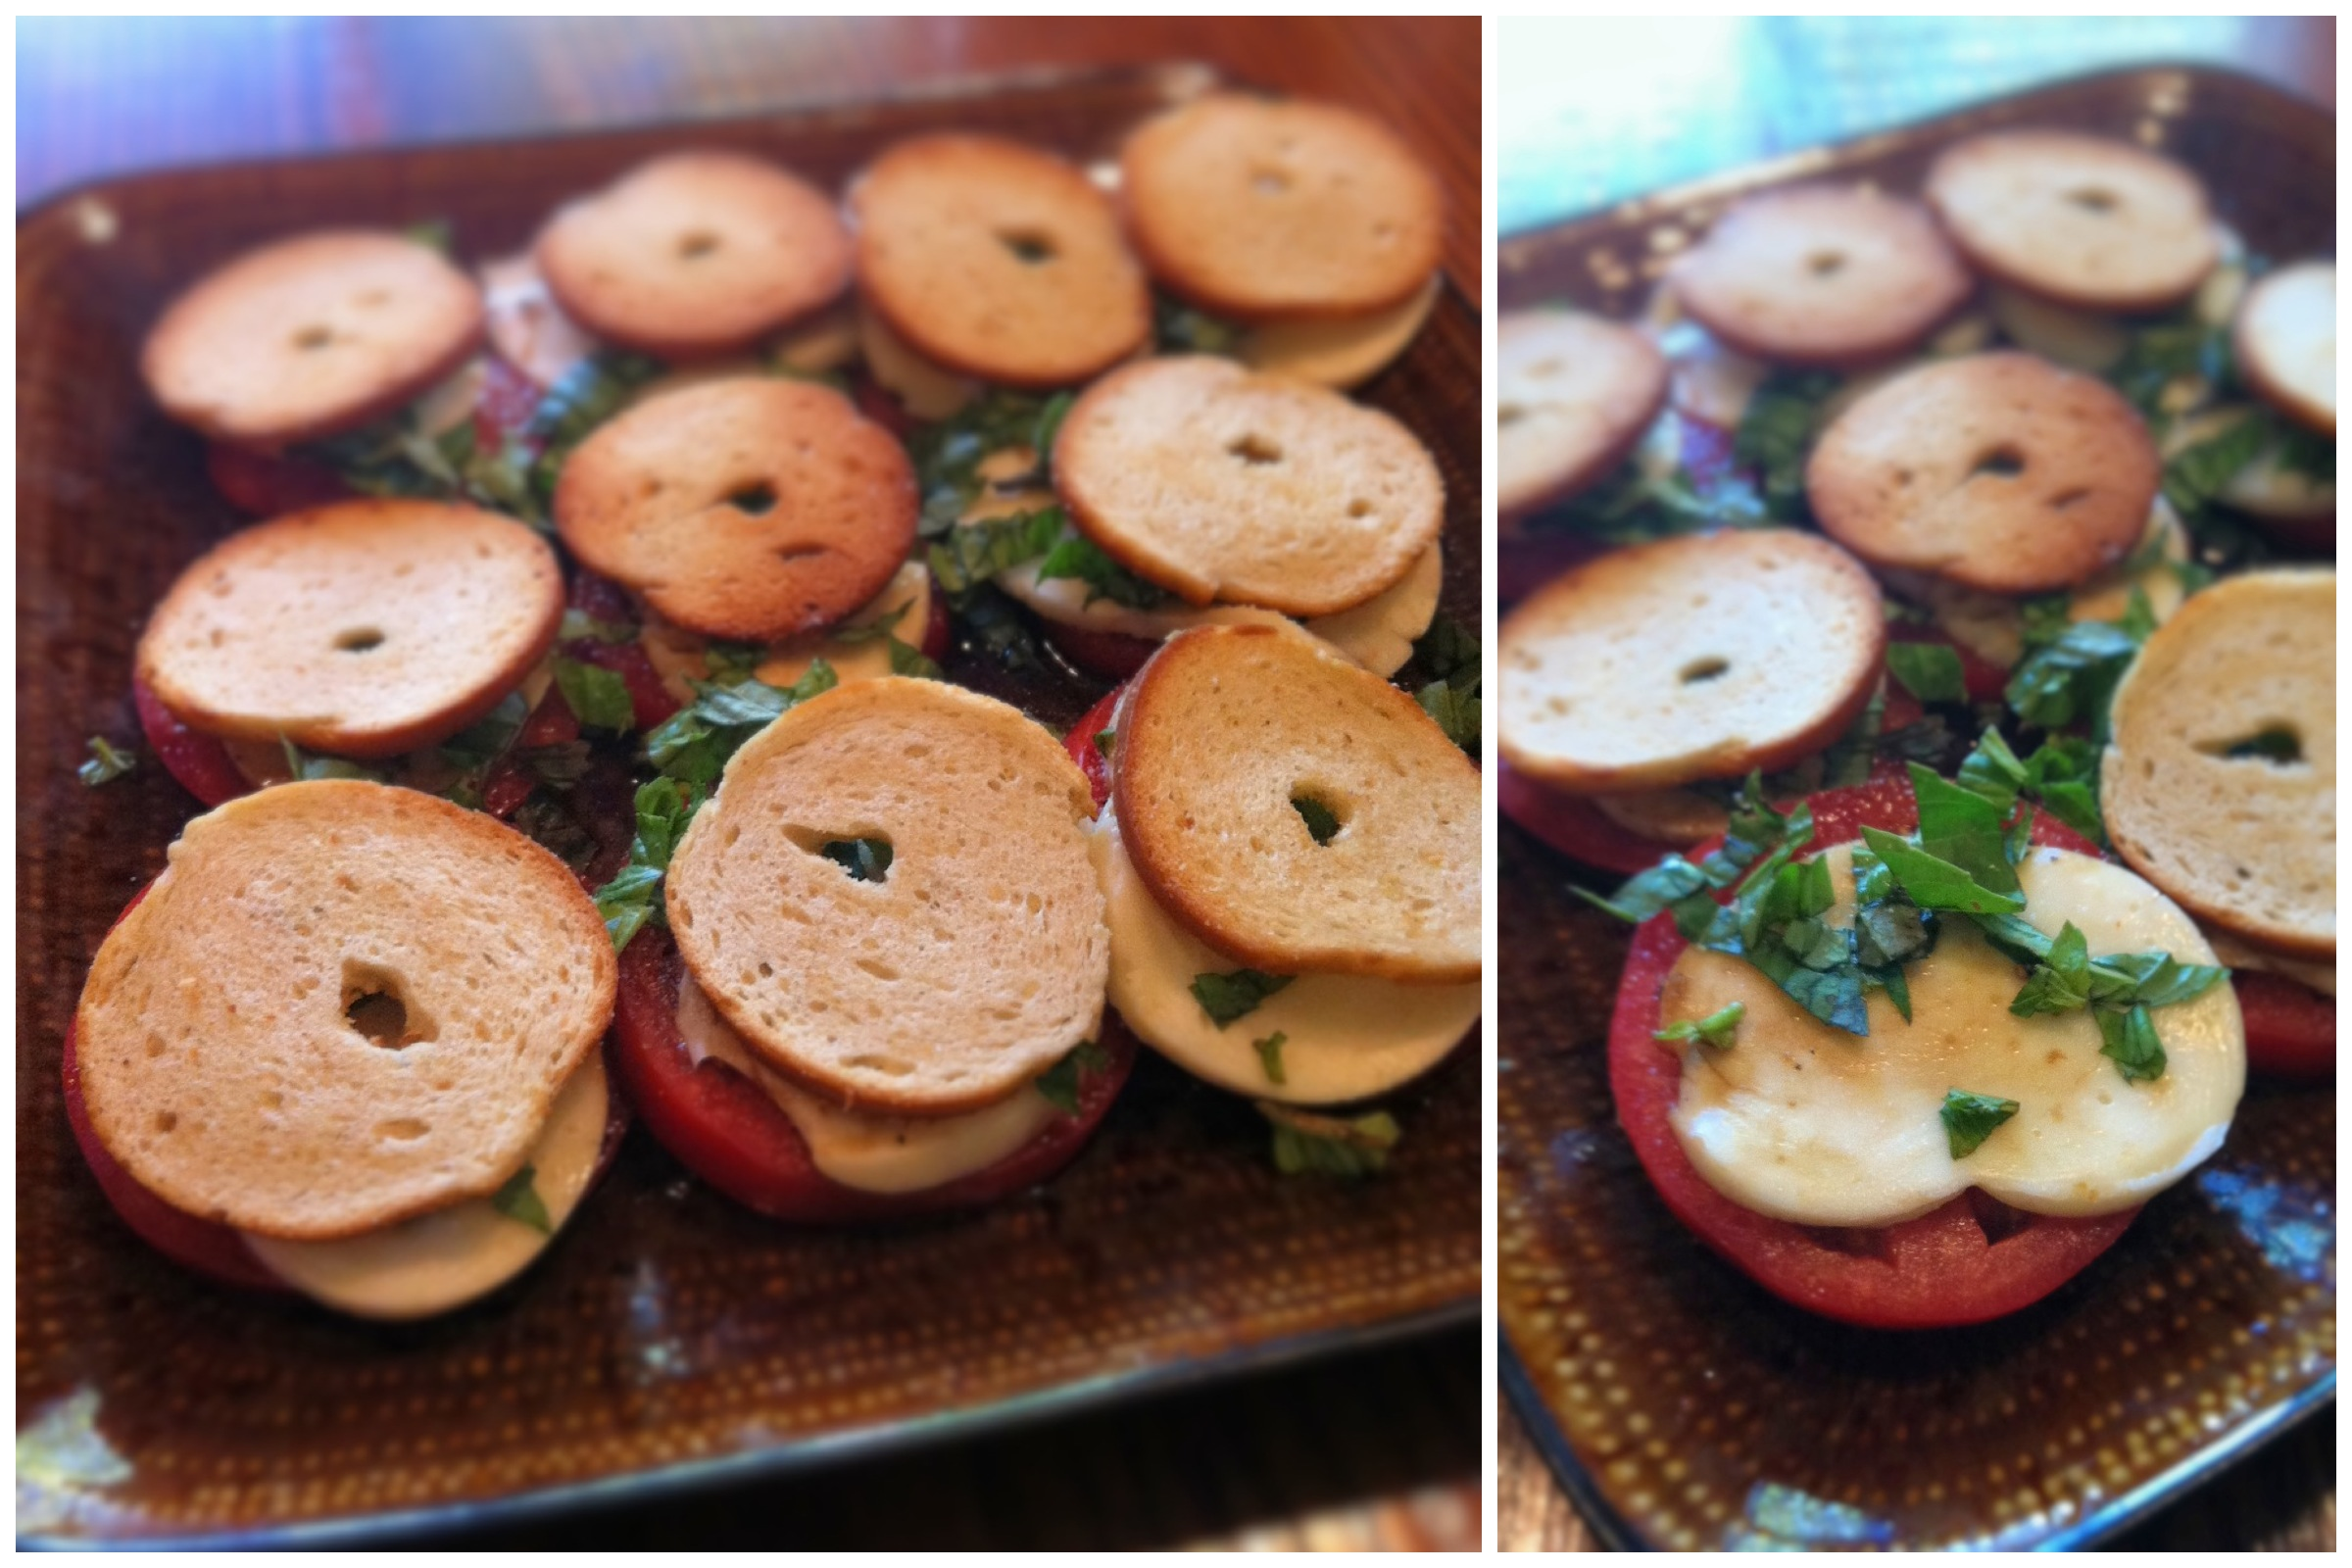 Made #bruschetta with Sea Salt Bagel Chips tonight. Put them on top so they wouldn't get soggy! It was YUM-O!!